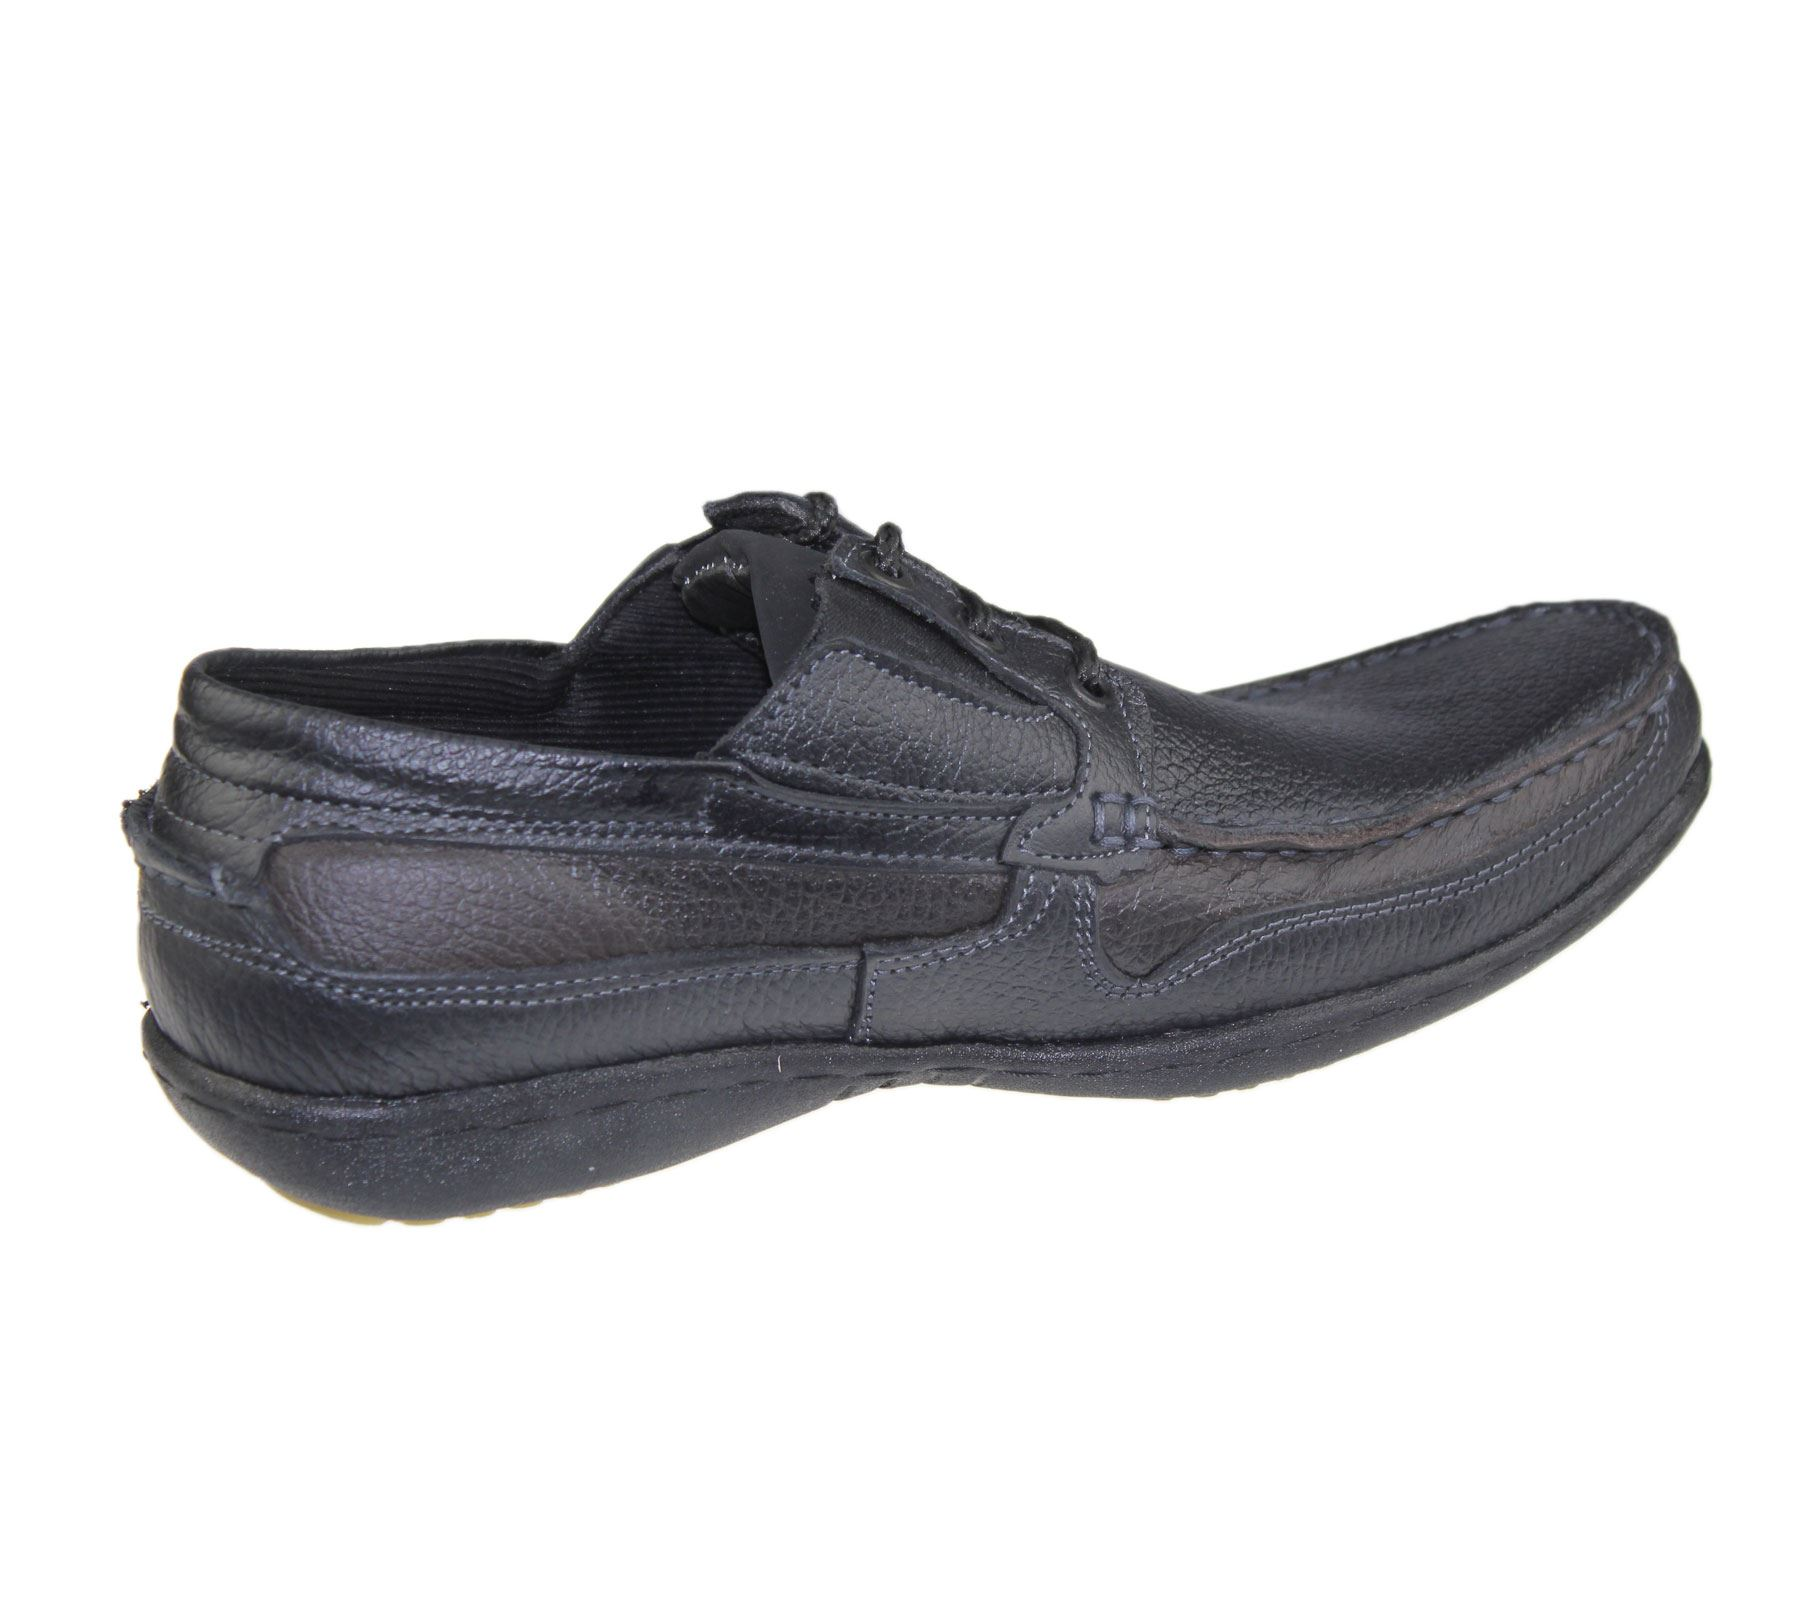 Comfort Smart Loafer Shoes For Men